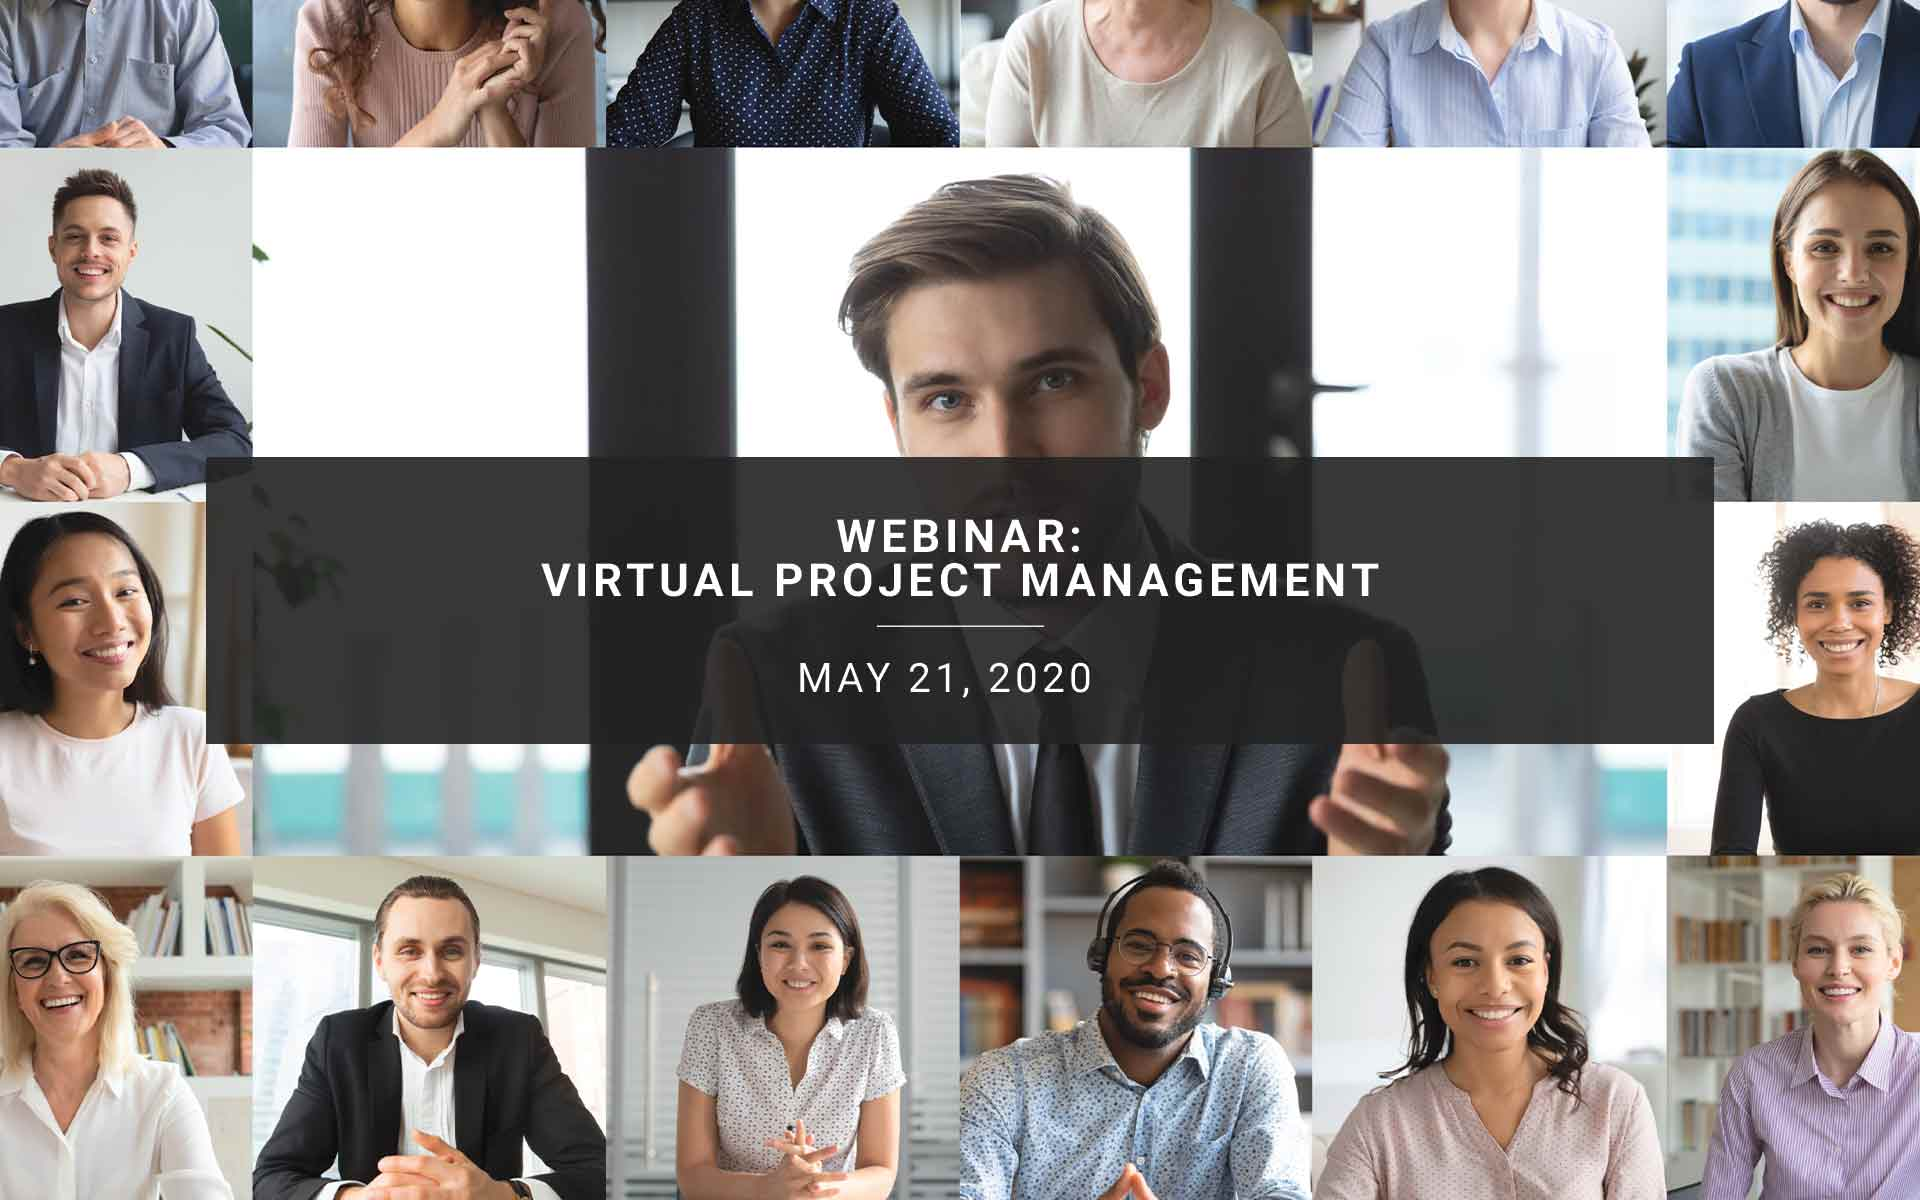 Webinar: Virtual Project Management